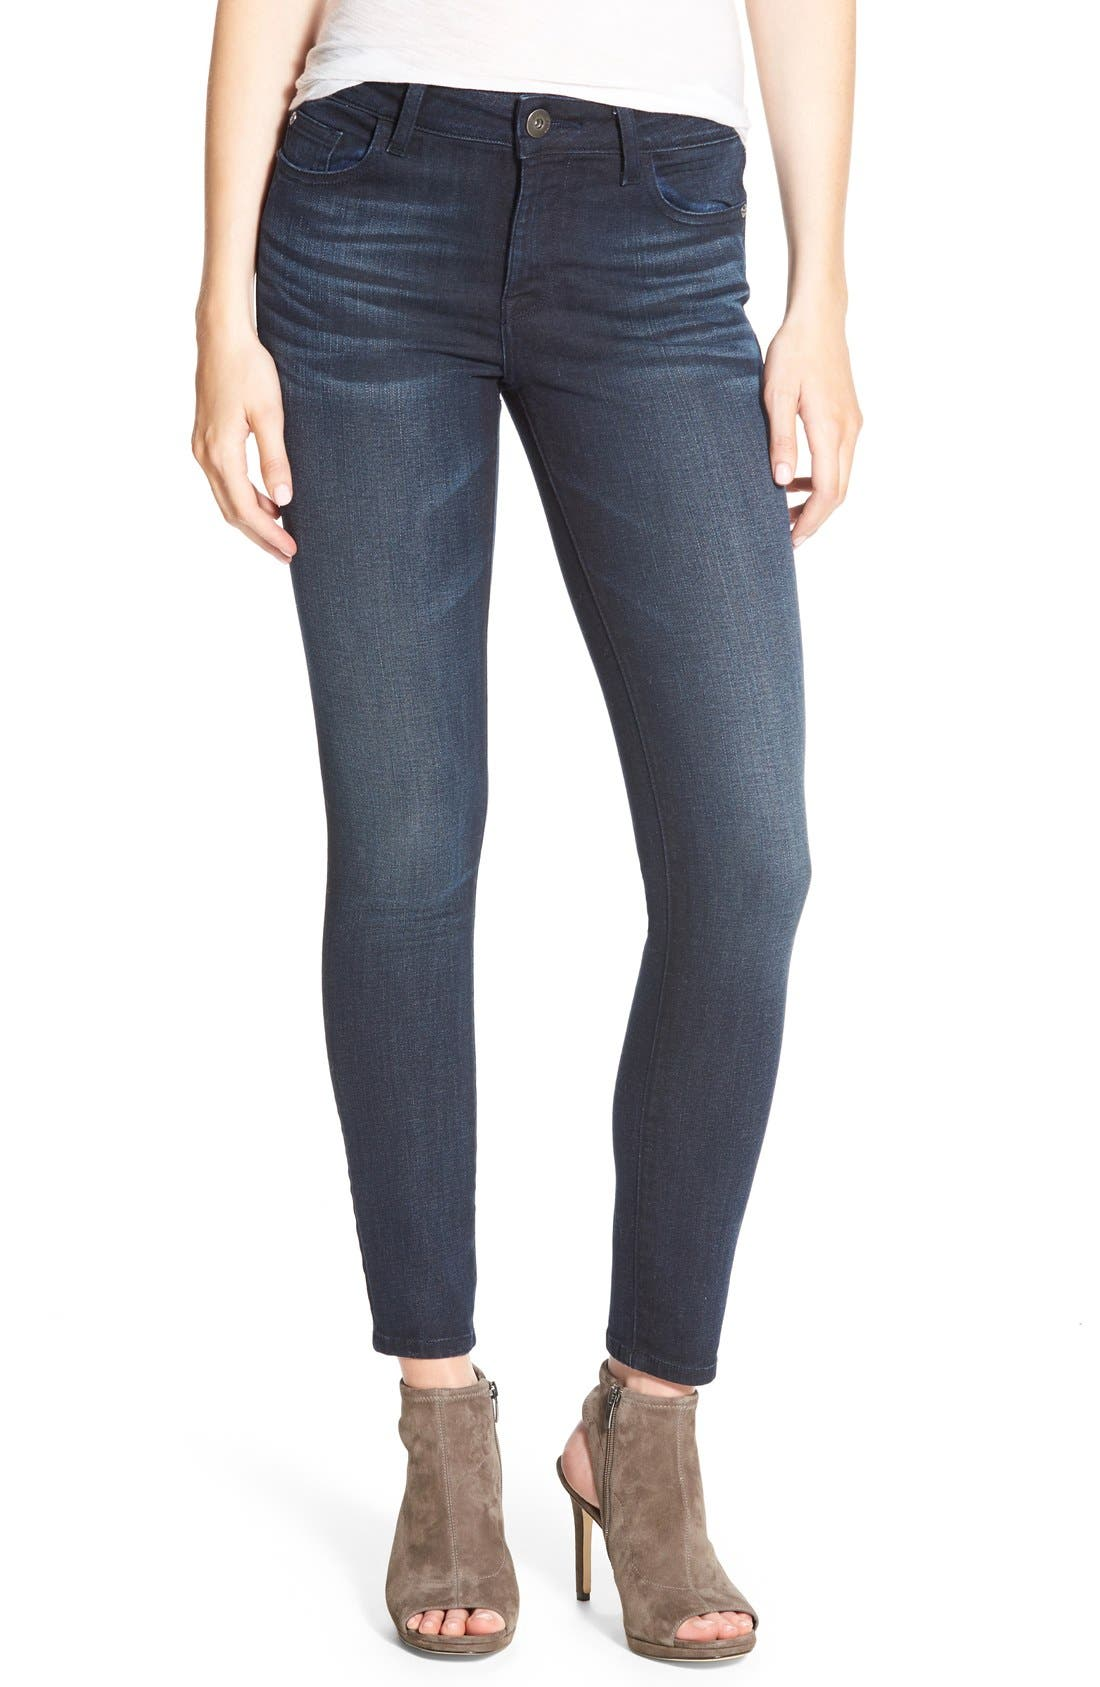 Alternate Image 1 Selected - DL1961 Margaux Instasculpt Ankle Skinny Jeans (Canyon)